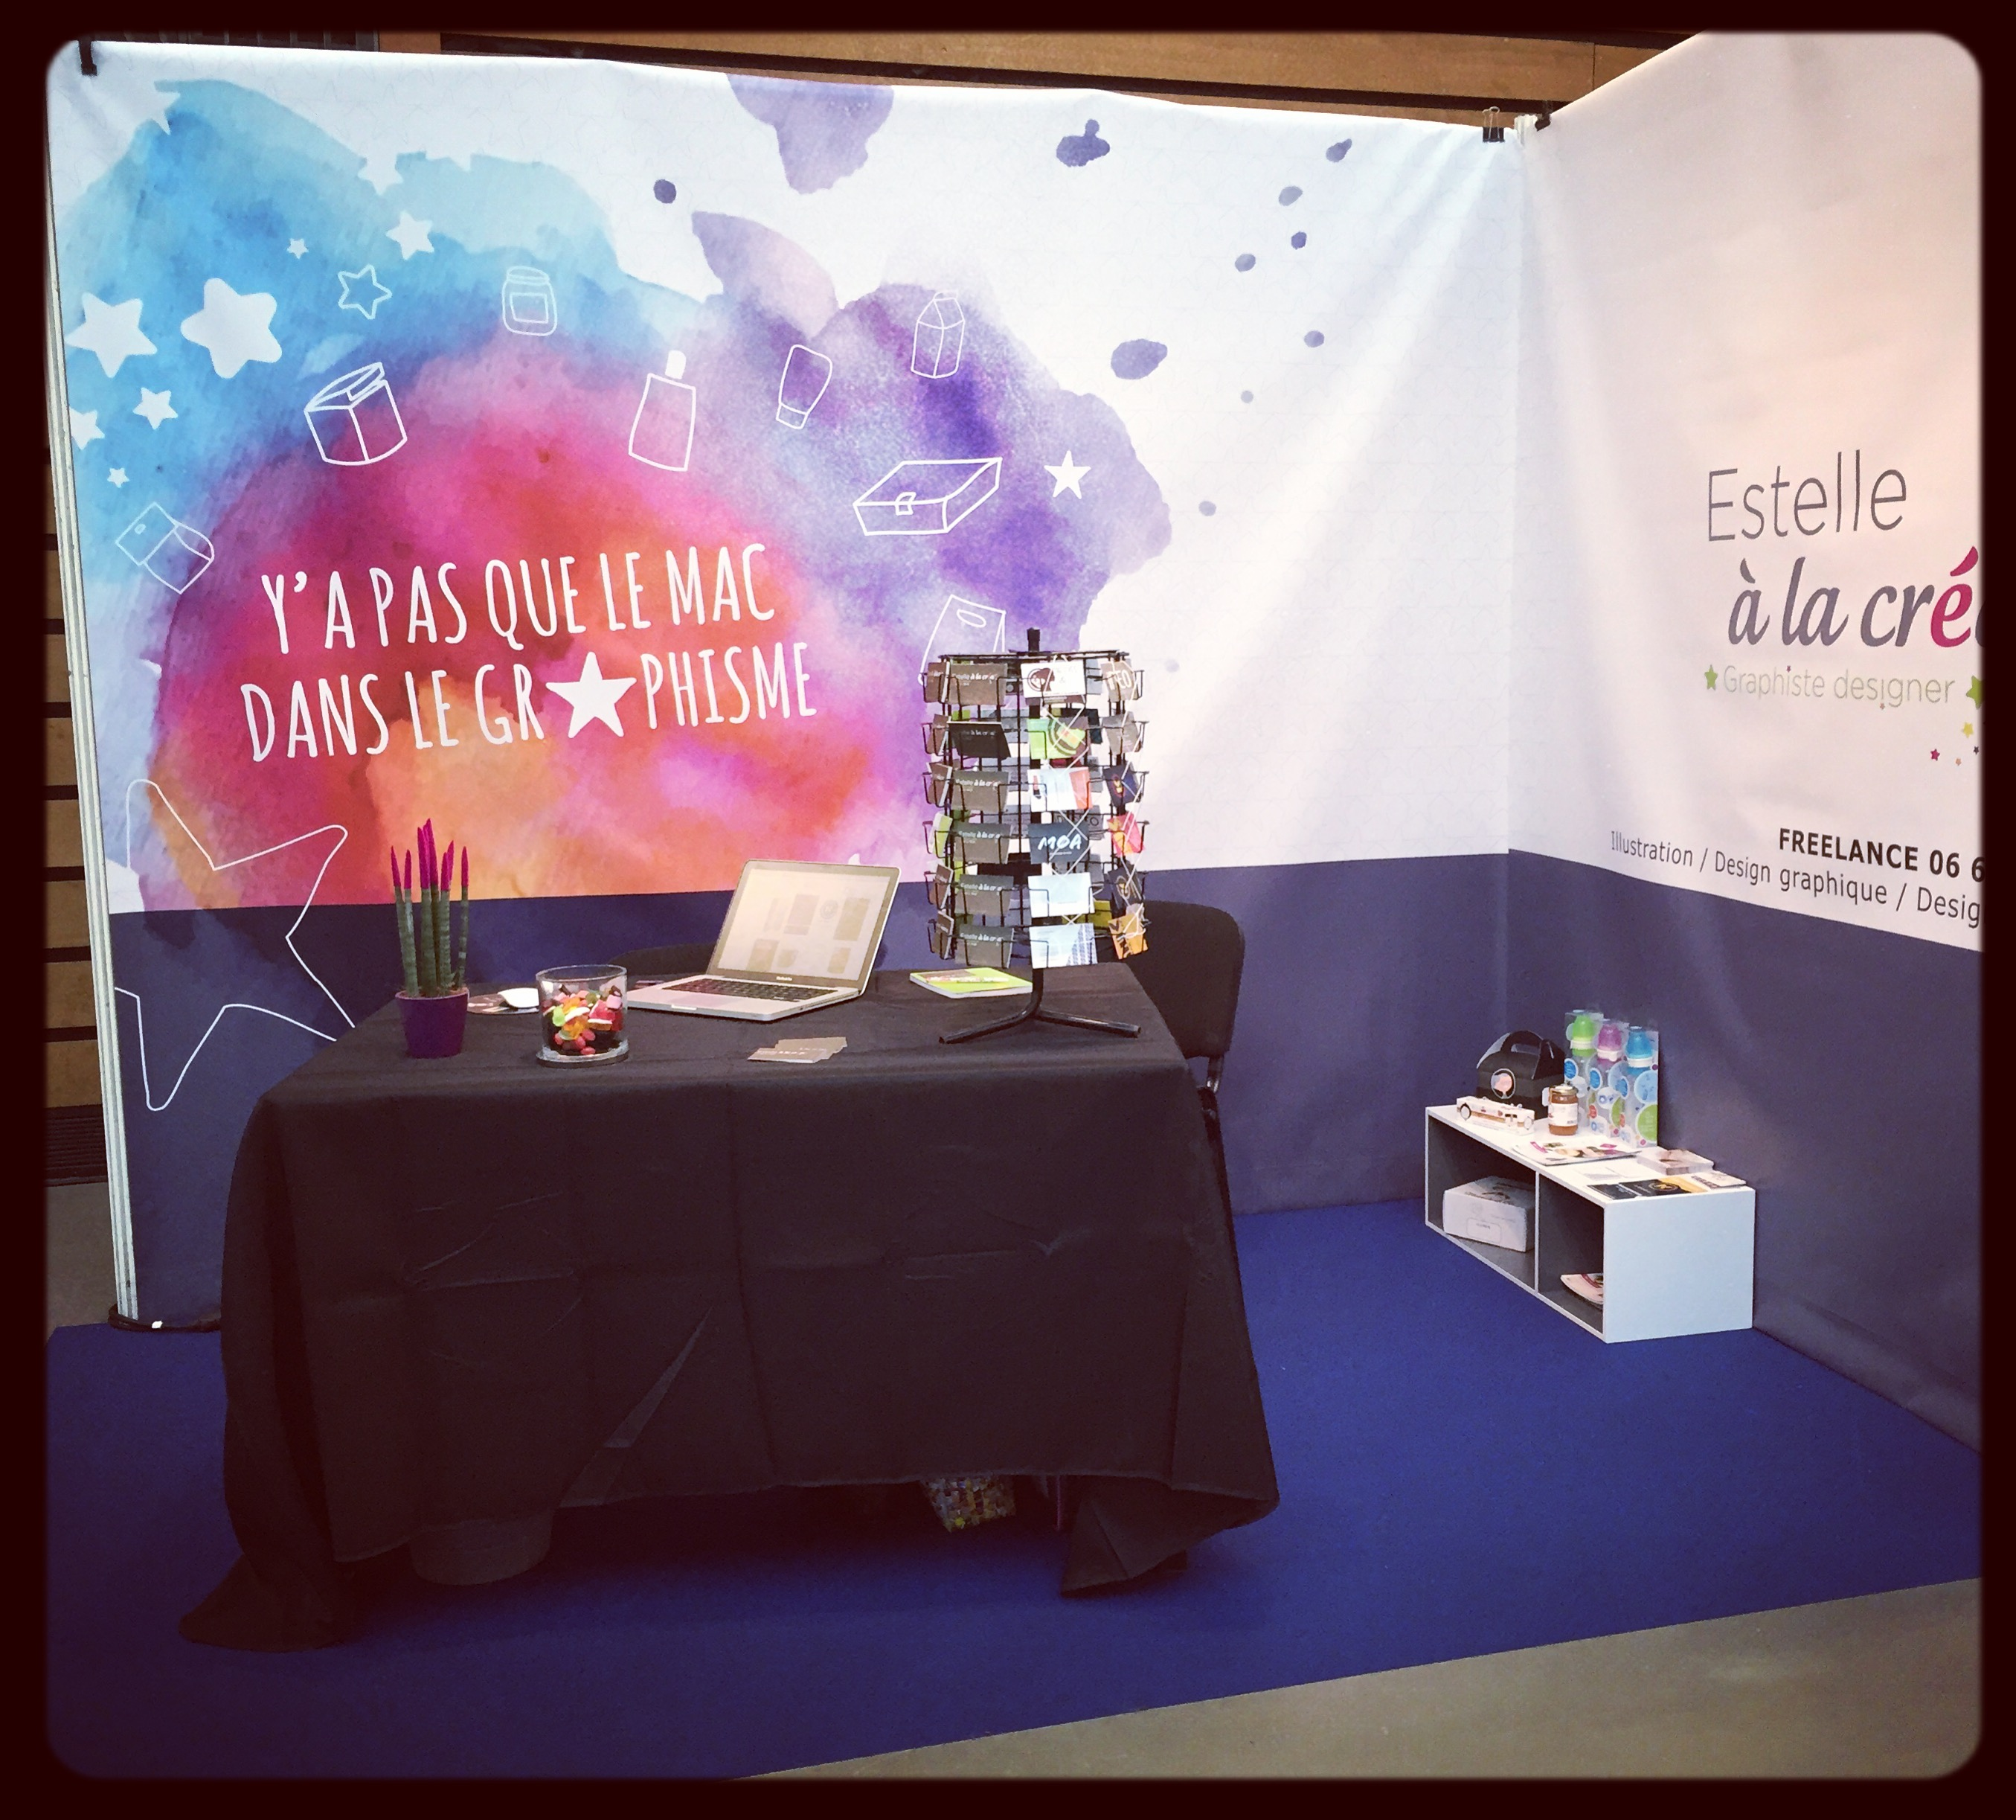 Salon de l entreprise 2015 estelle la cr a designer for Salon creation entreprise